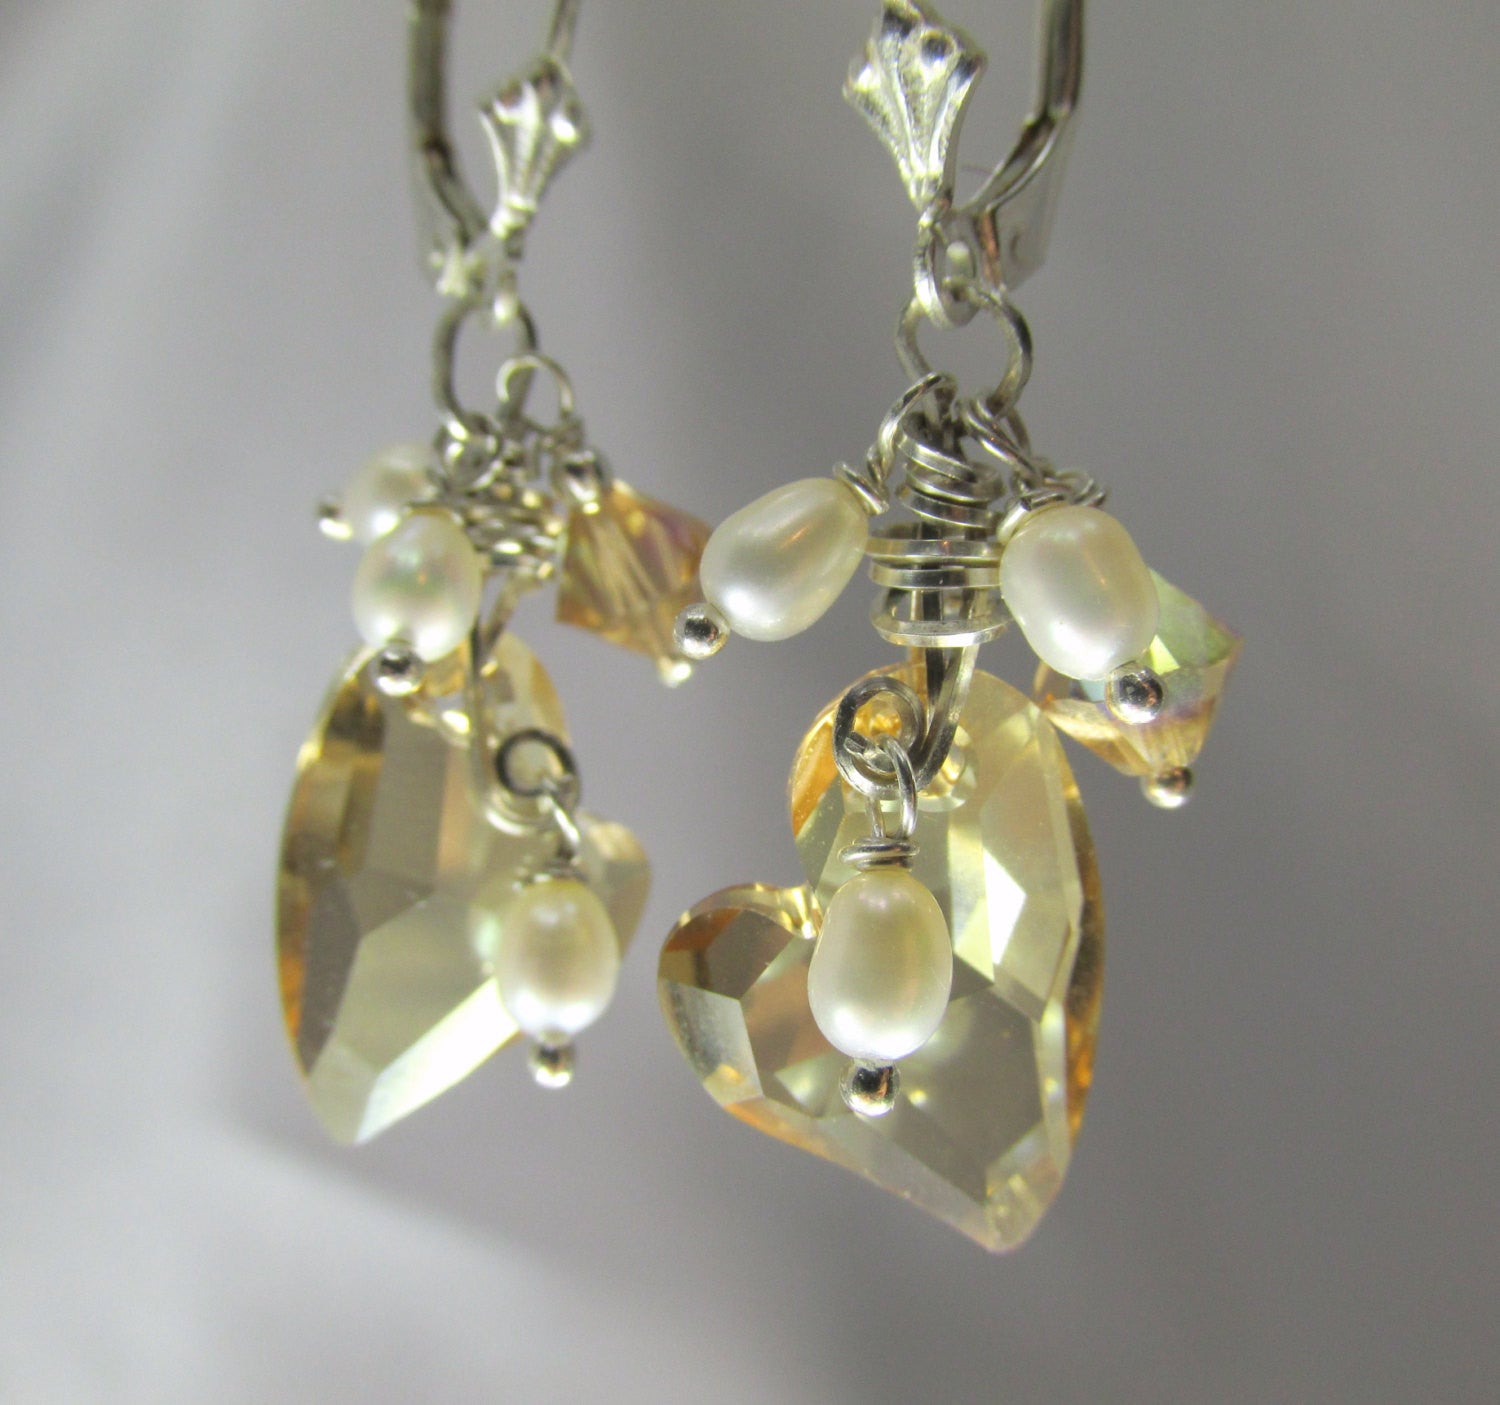 Swarovski Heart Earrings in Golden Shadow with wire wrapped White Freshwater Pearls on all sterling silver for Bridal or Bridesmaid - Odyssey Creations